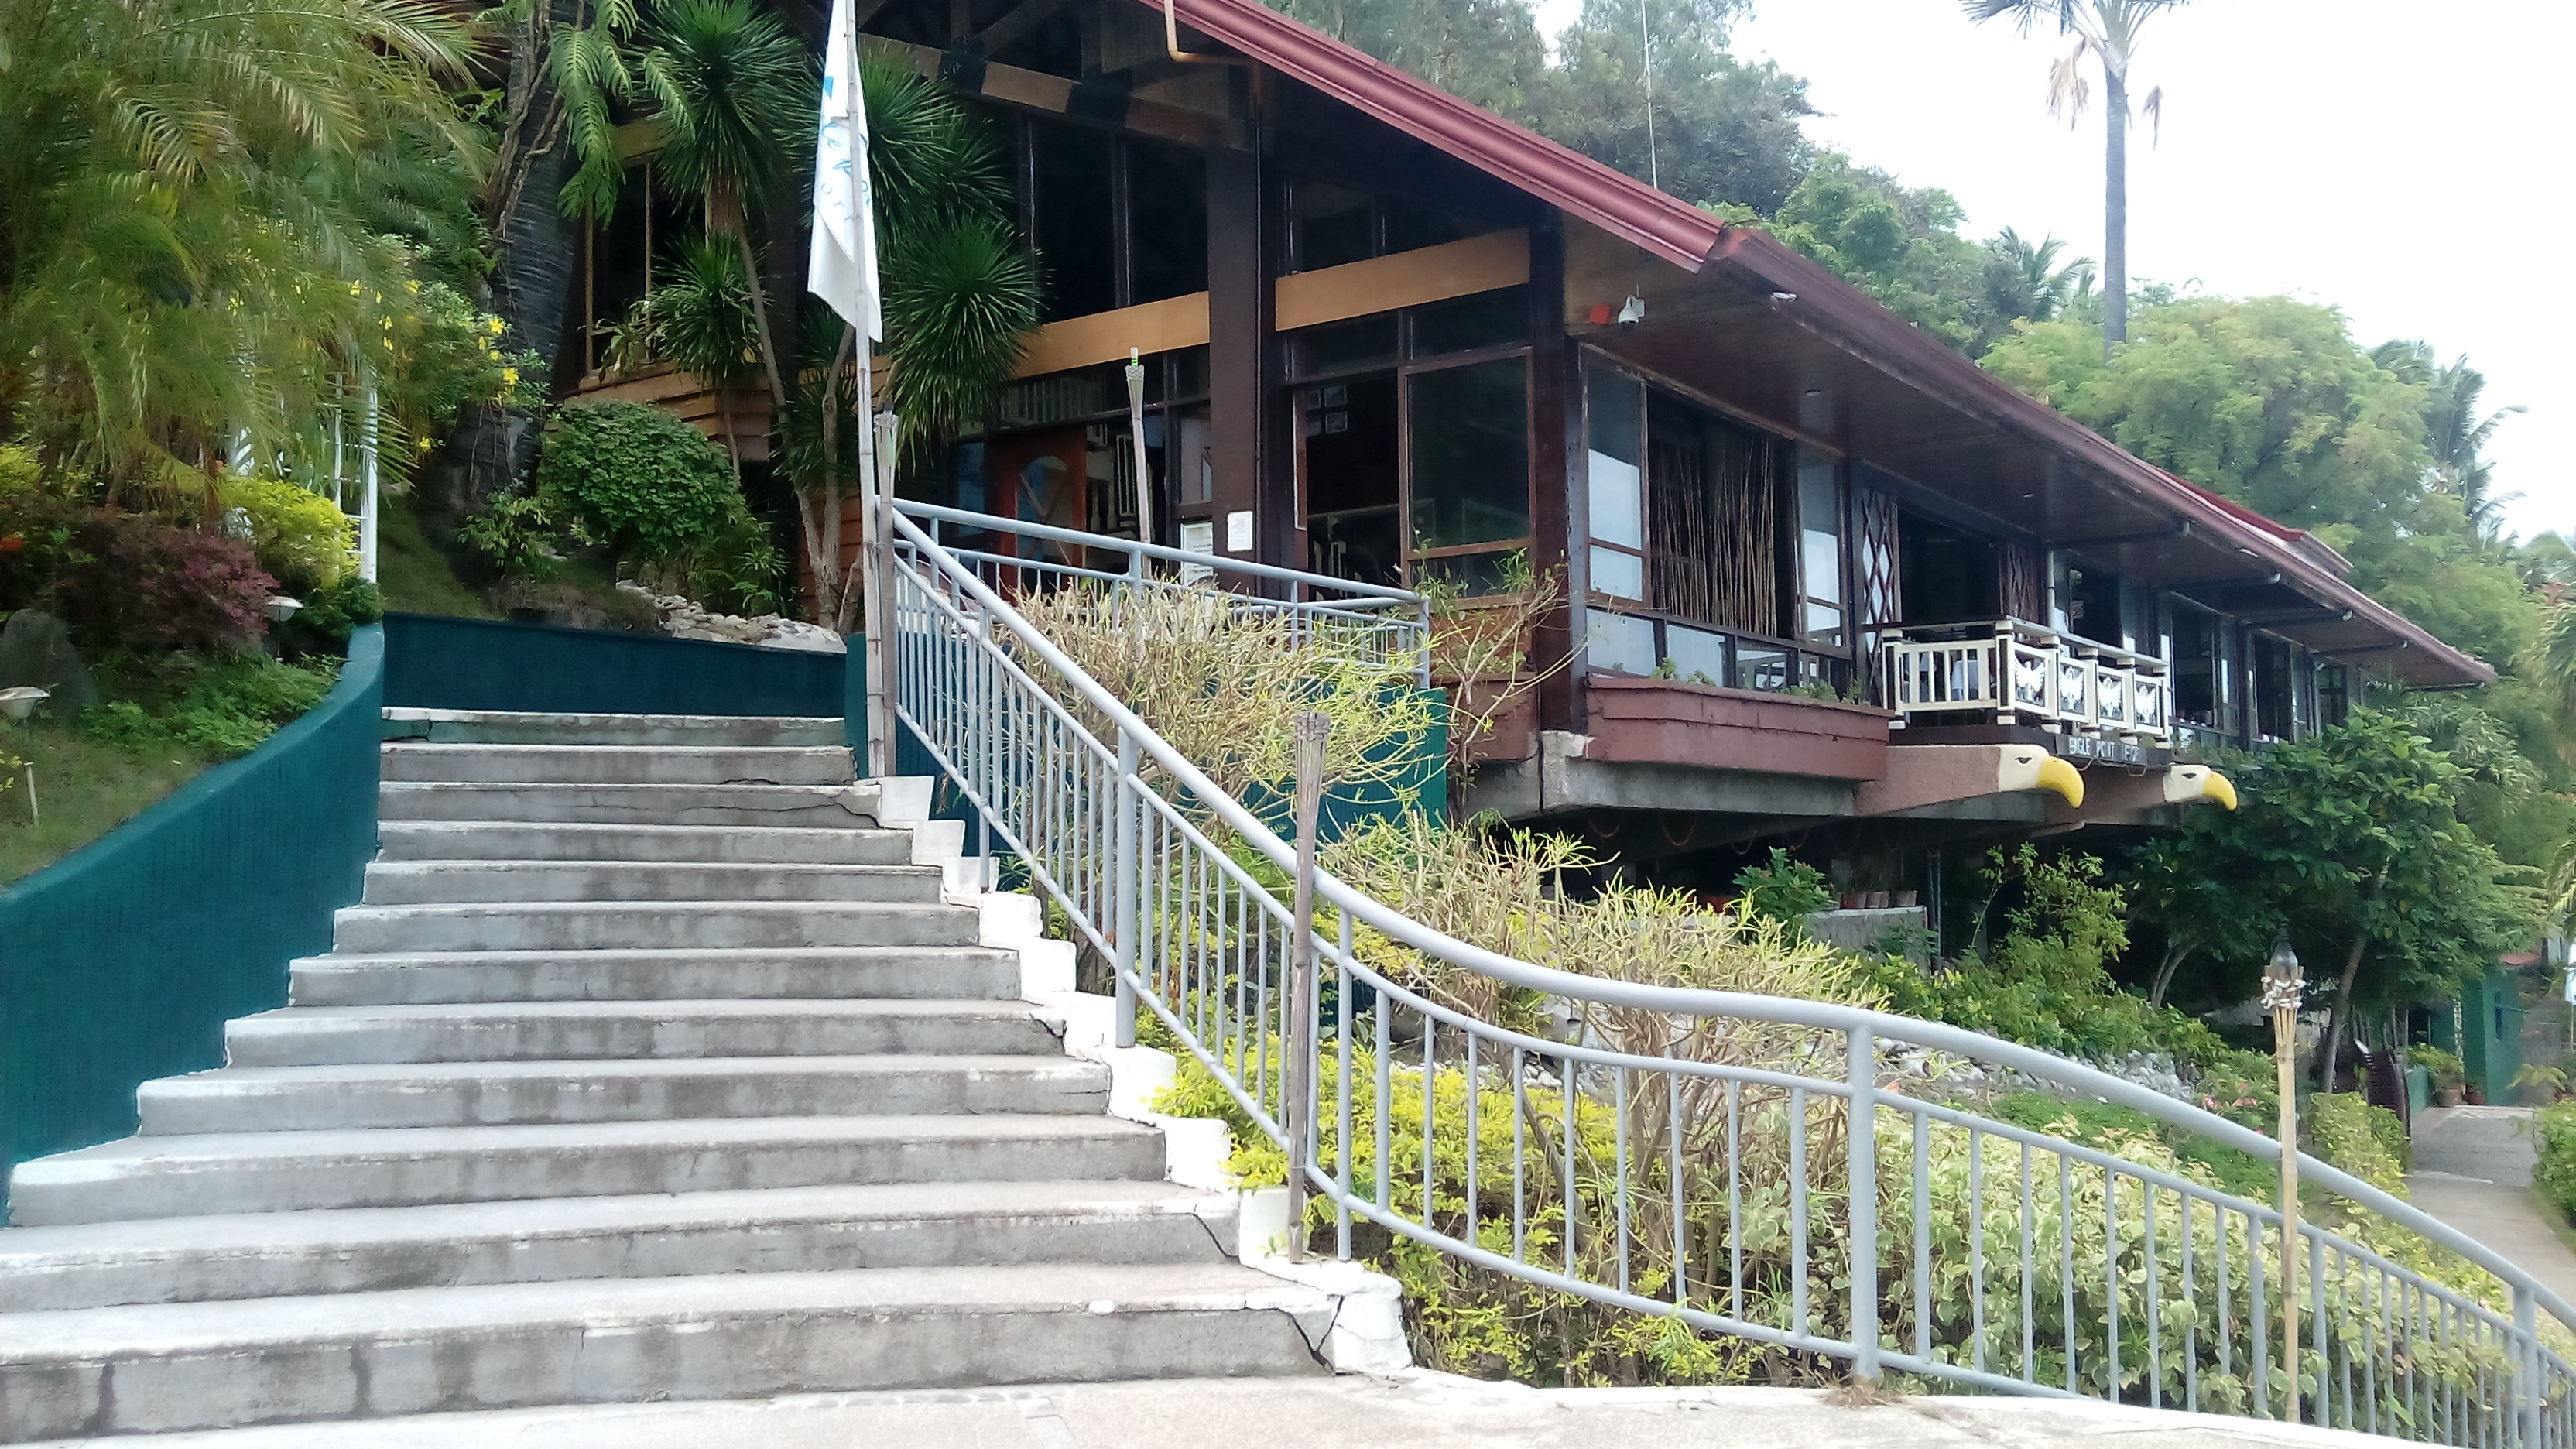 Eagle Point Resort Resorts In Batangas Philippines 01